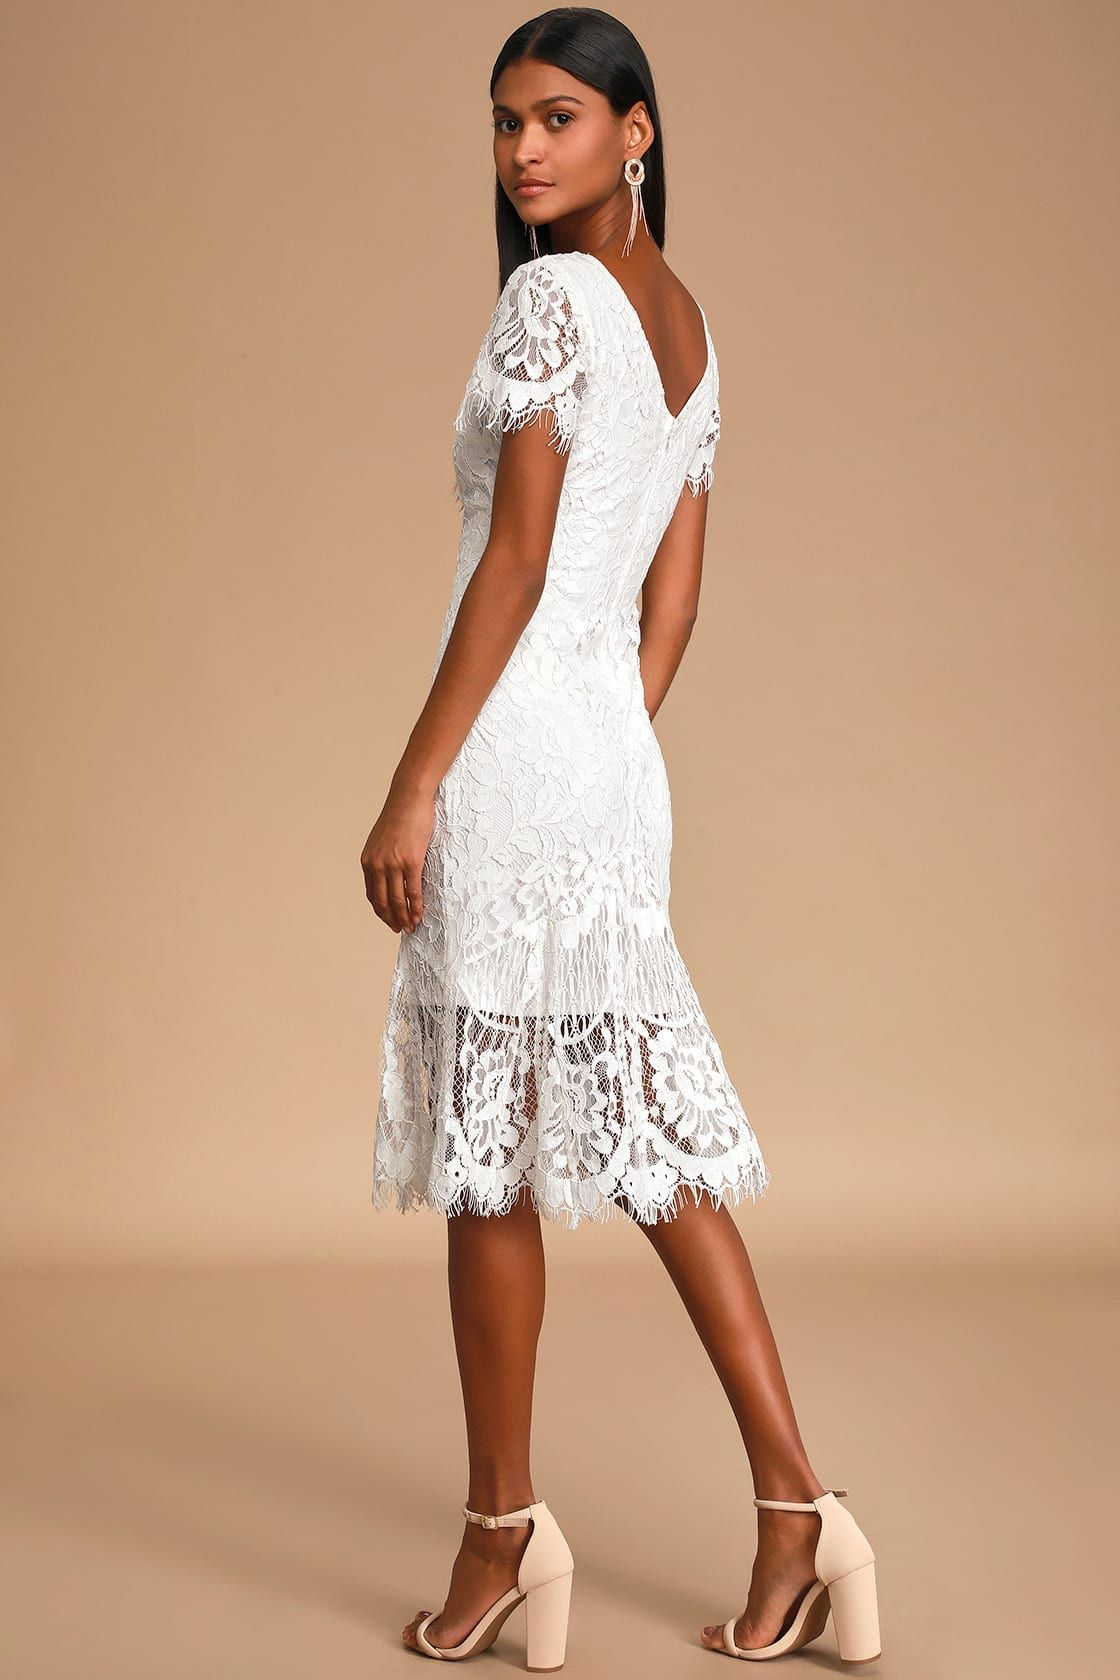 Bound To Fall In Love White Lace Midi Dress White Lace Midi Dress Lace White Dress Dresses [ 1680 x 1120 Pixel ]